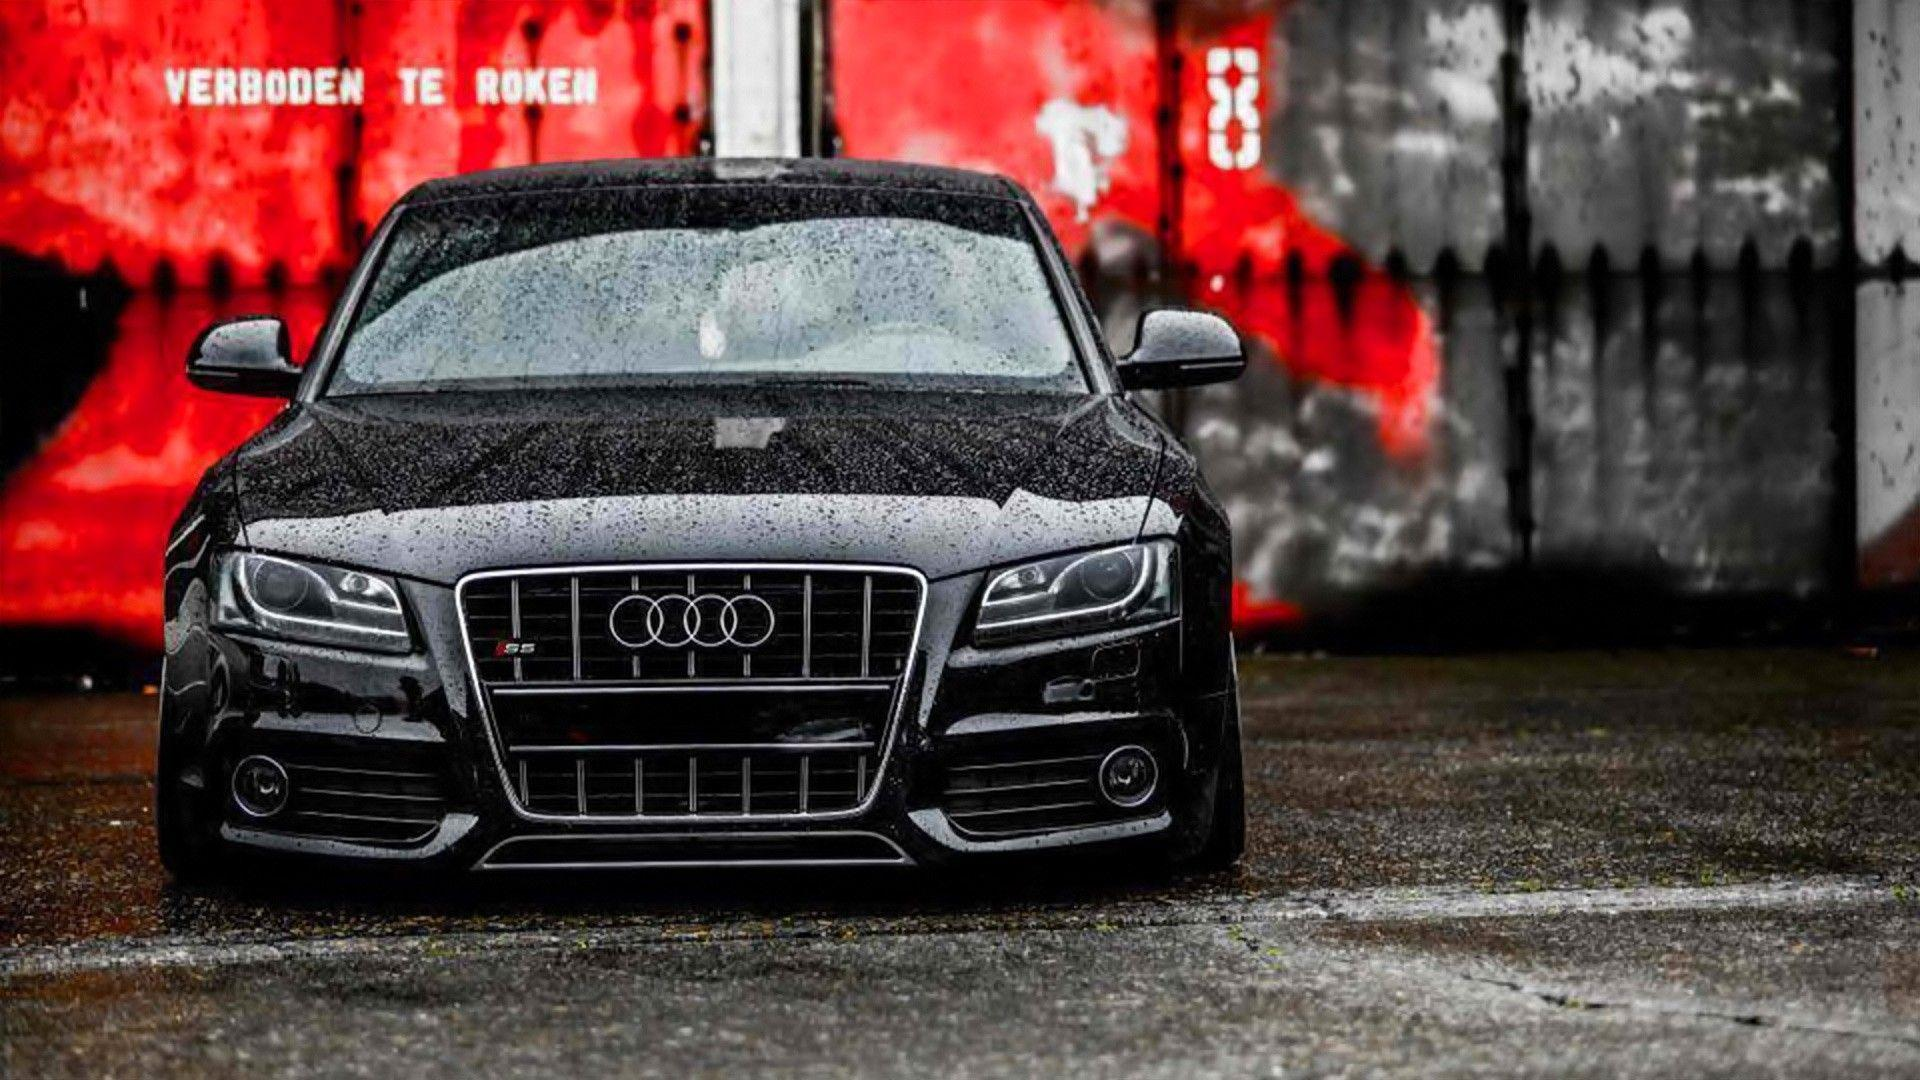 Audi Wallpapers and Backgrounds Image